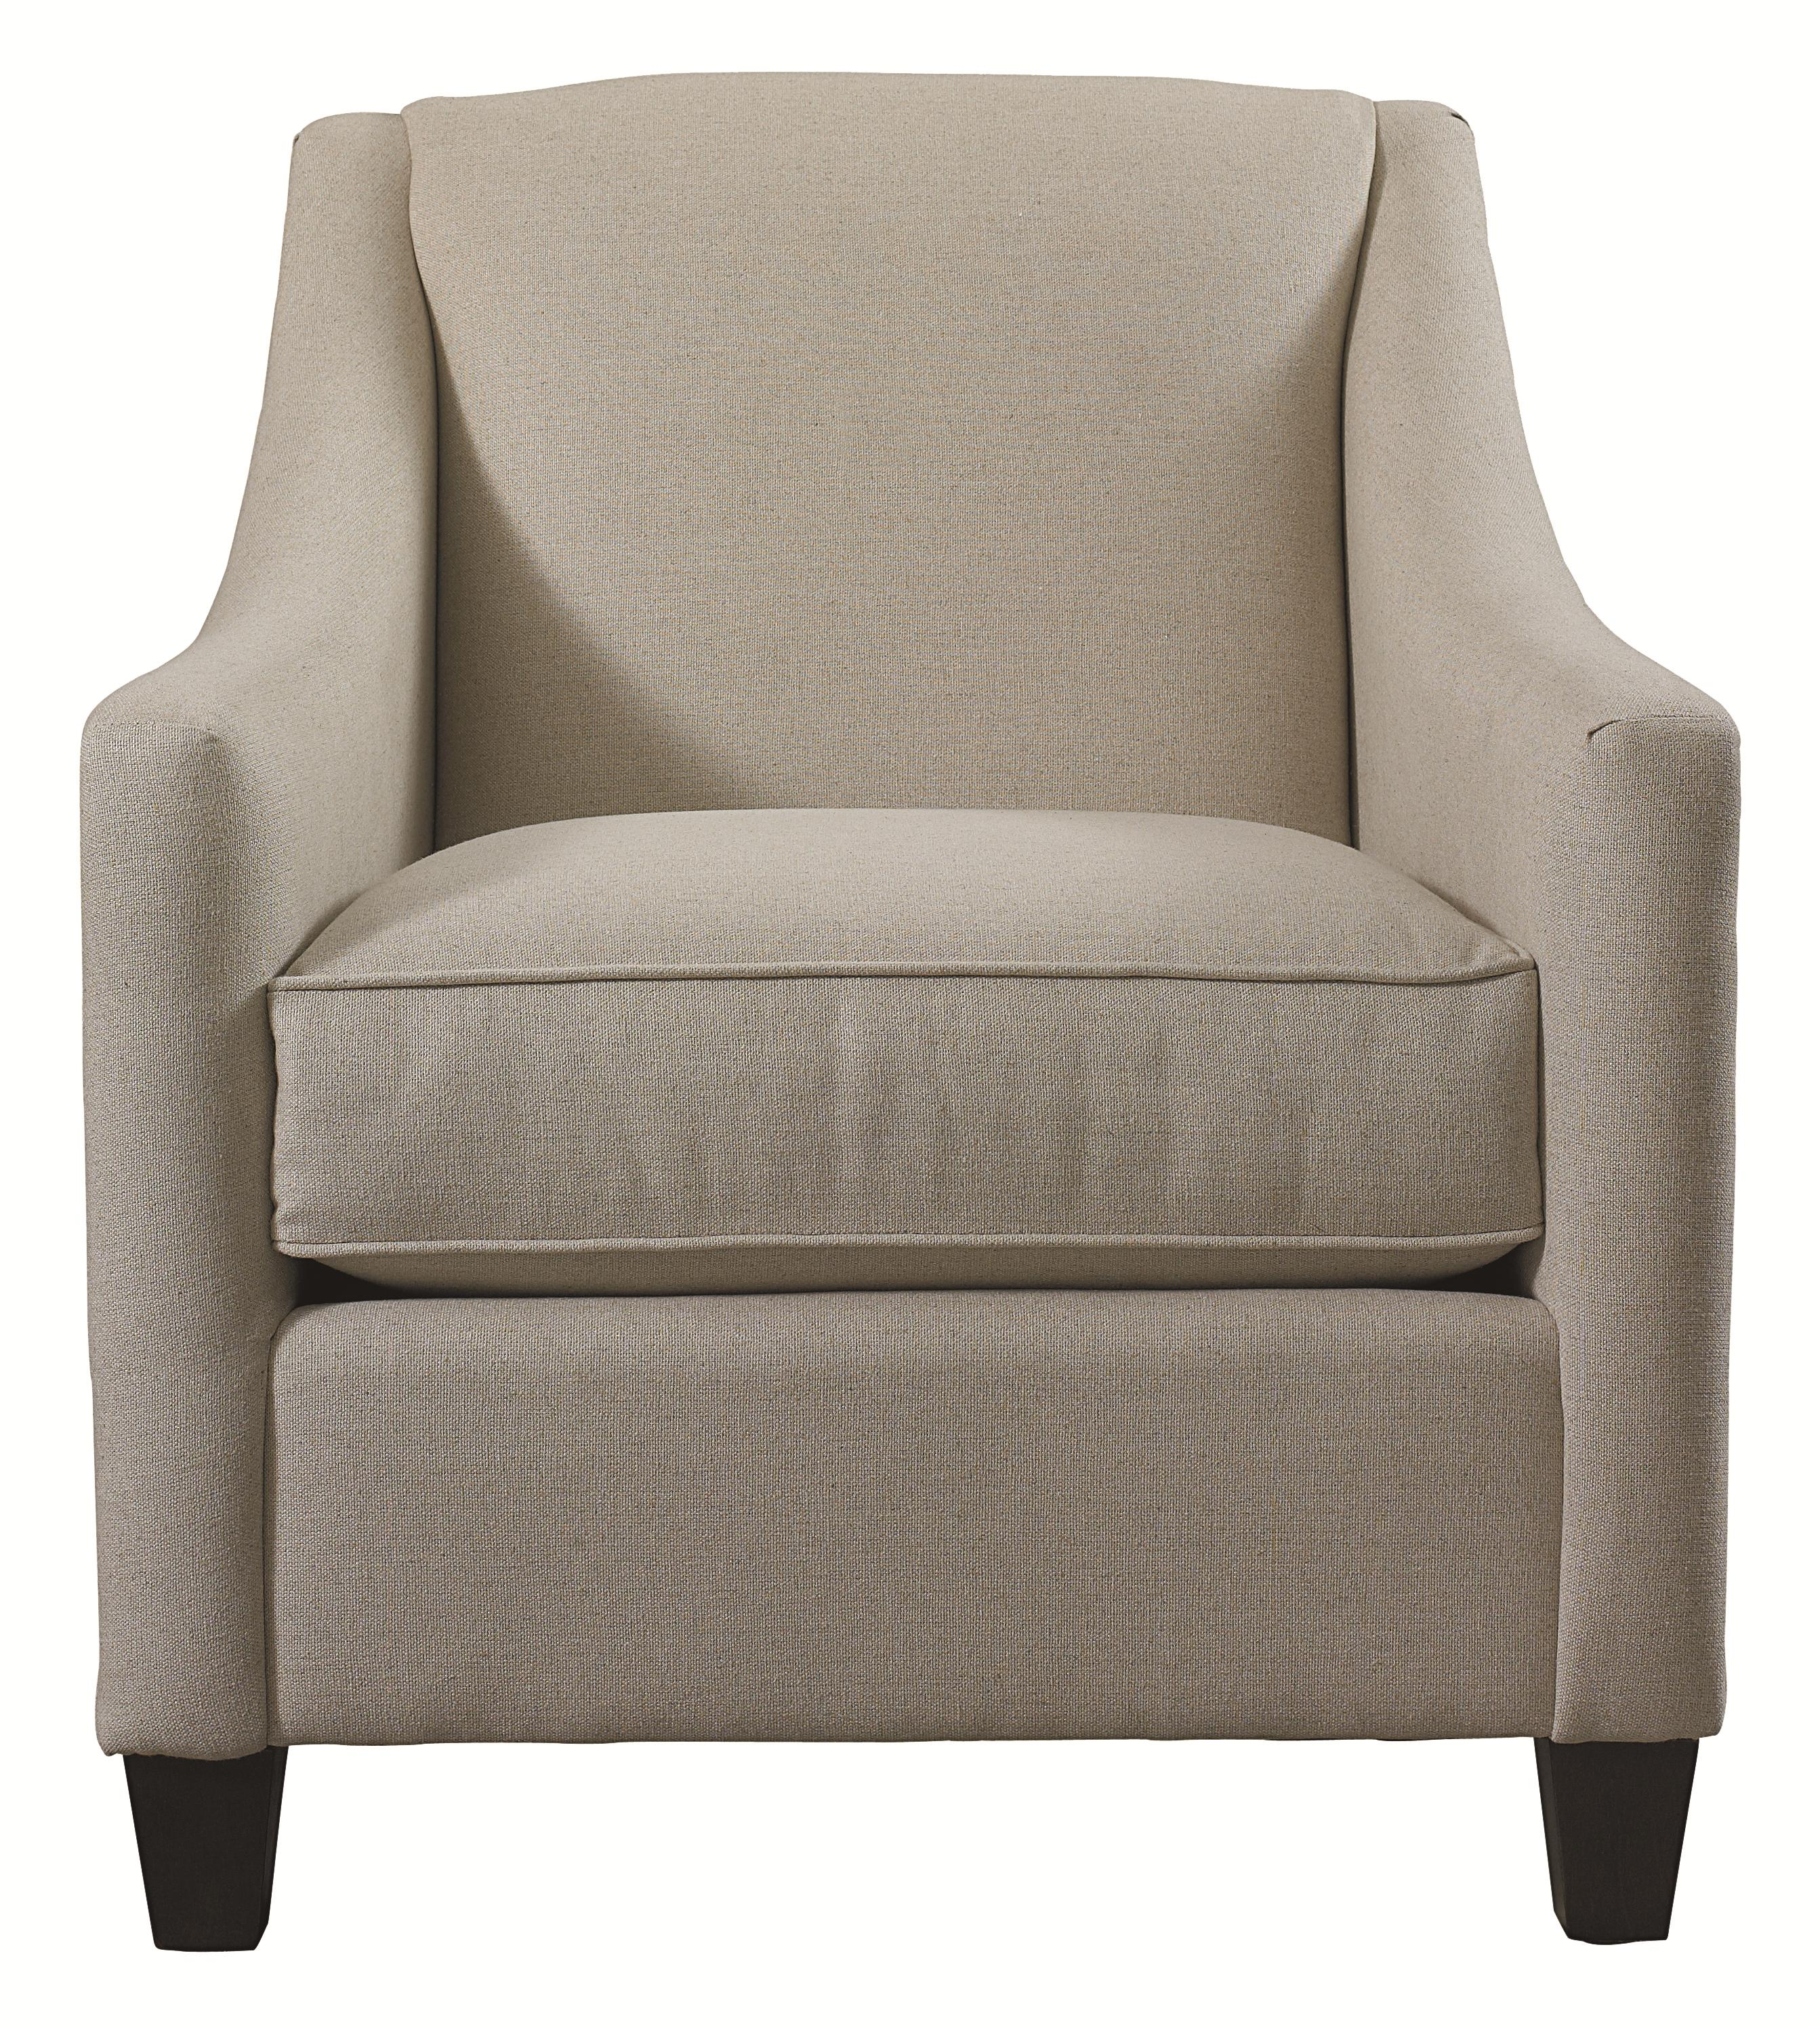 bassett furniture chairs chair for two person accent by corina with